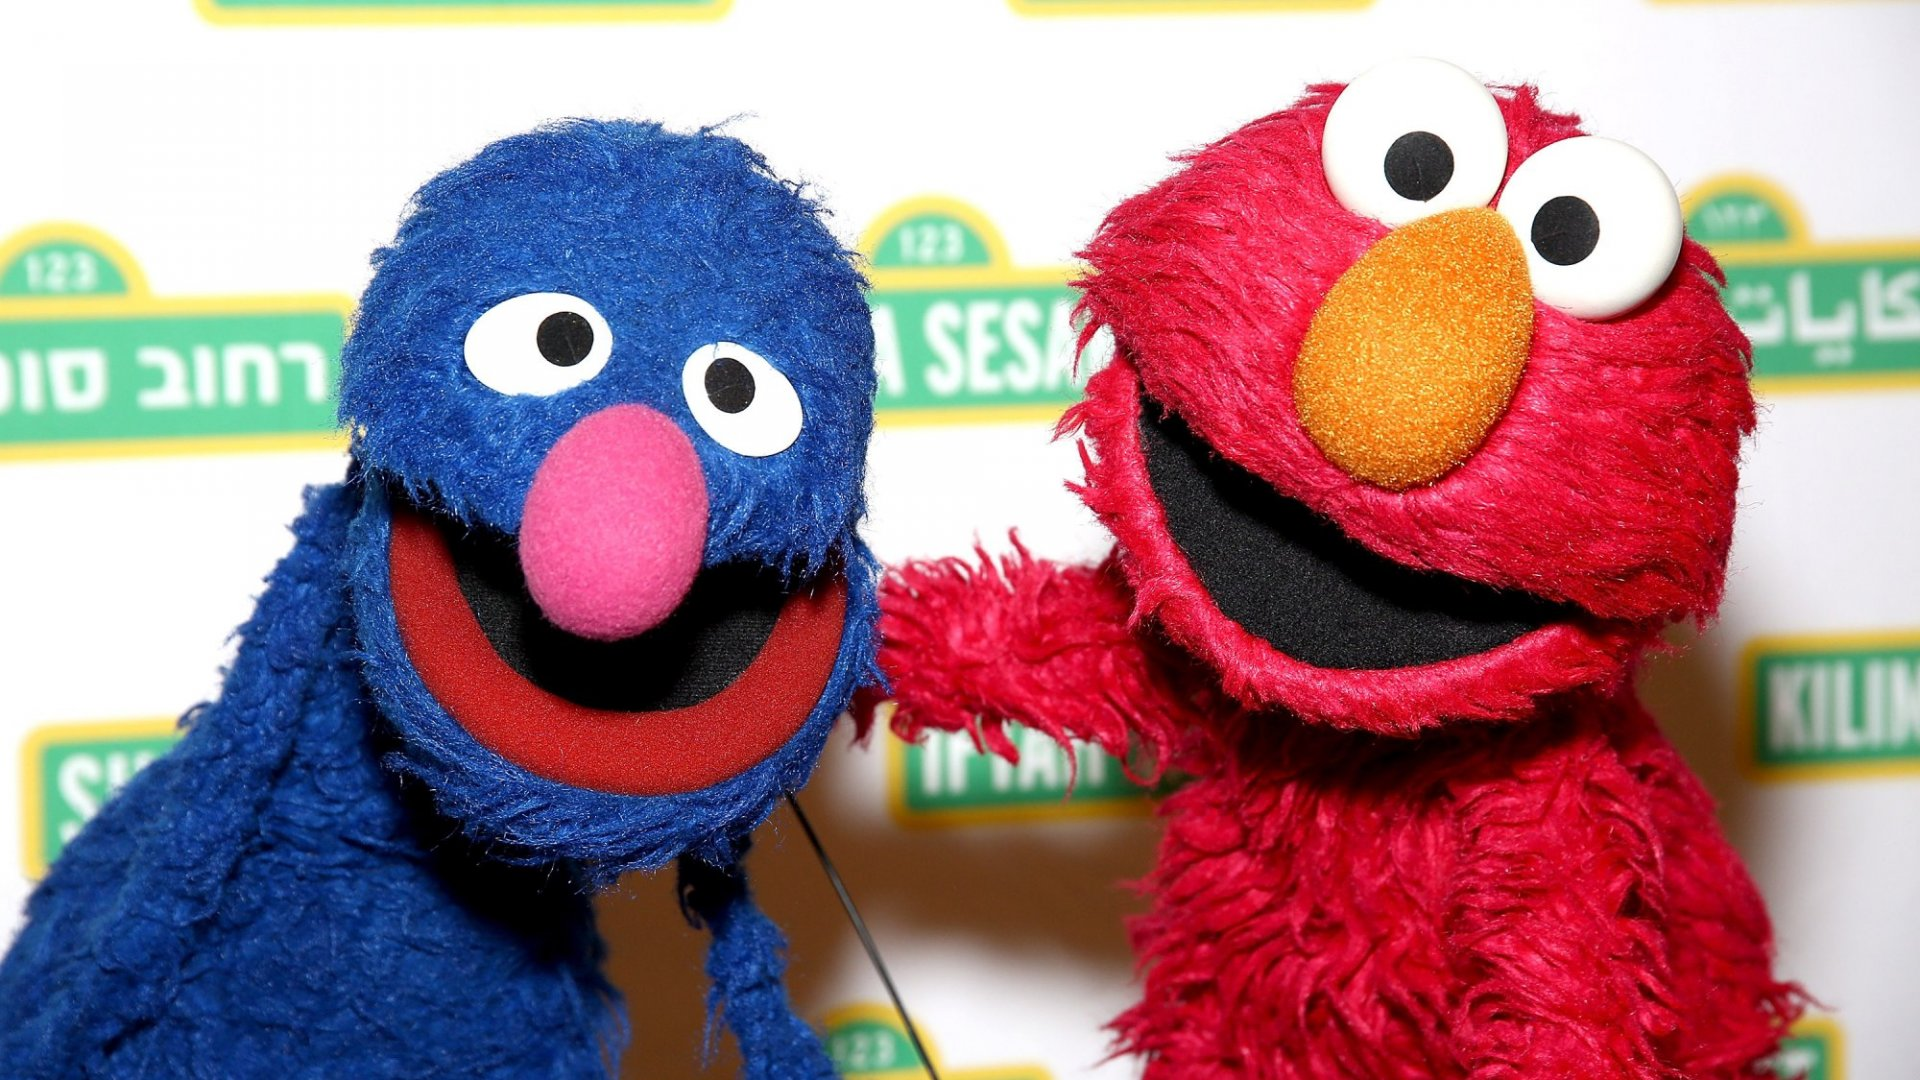 Has 'Sesame Street' Sold Out?